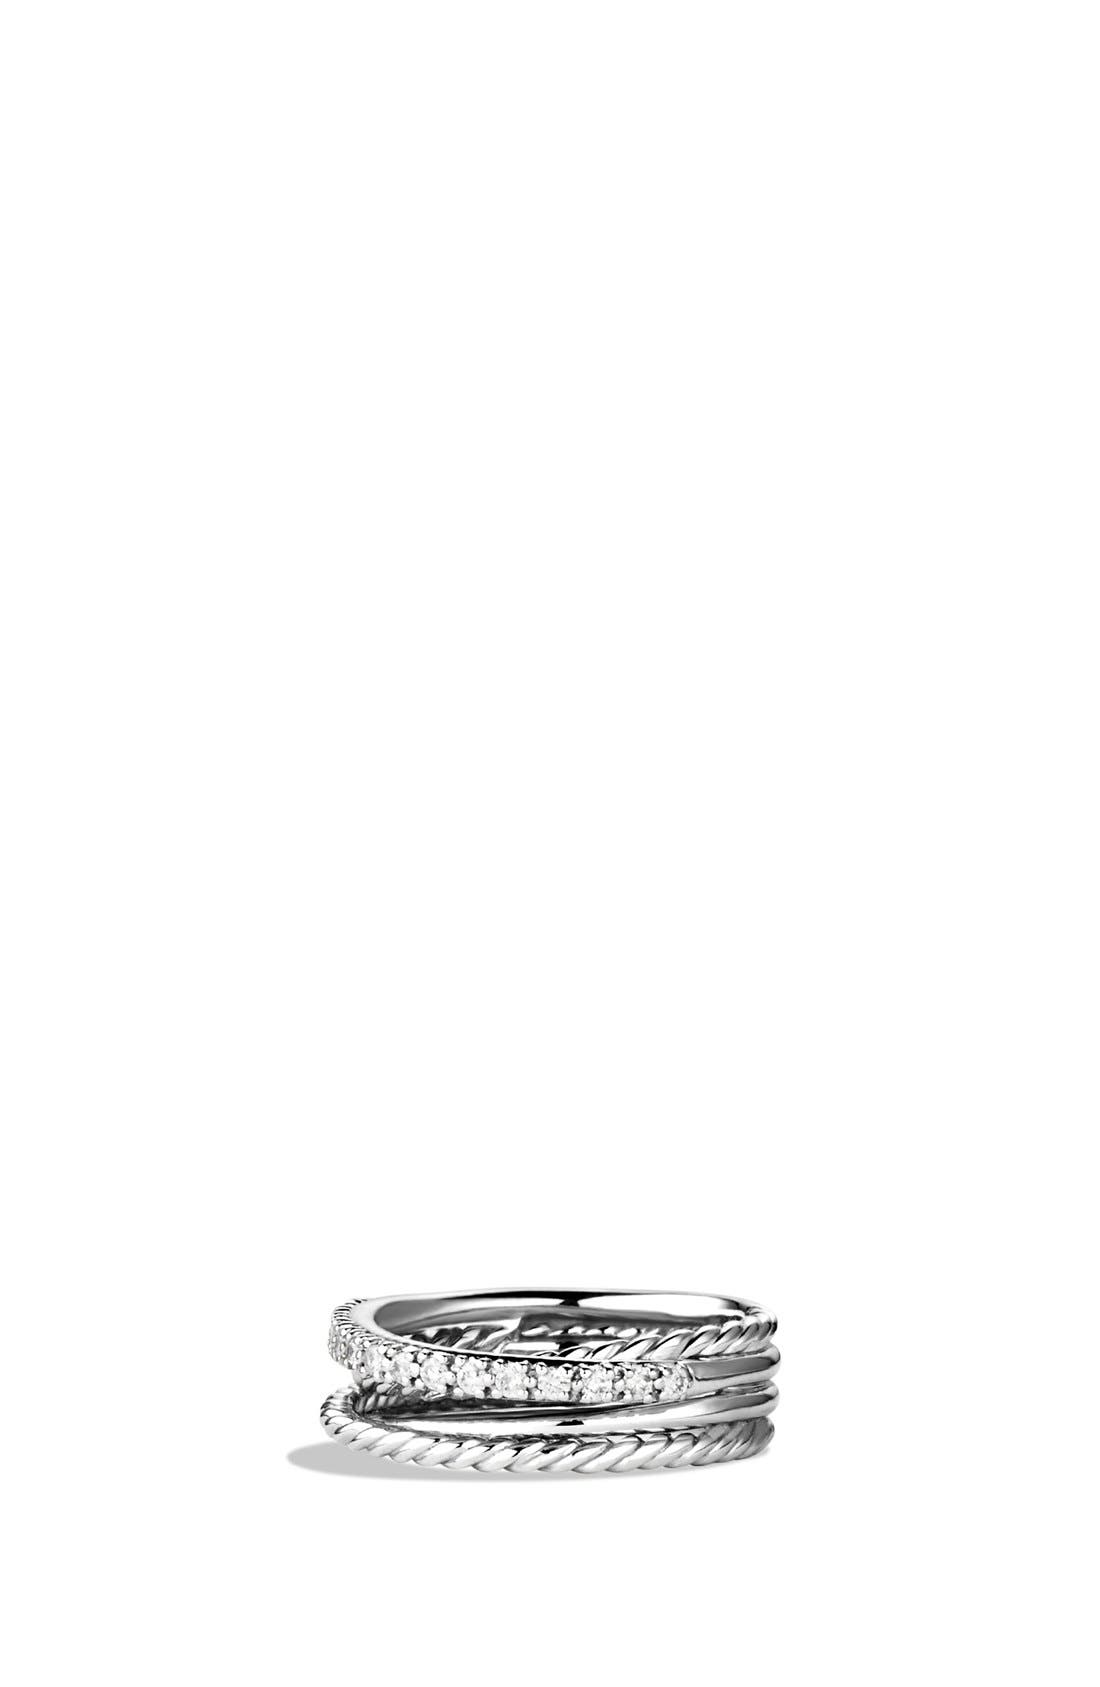 'Crossover' Ring with Diamonds,                             Main thumbnail 1, color,                             Silver/ Diamond